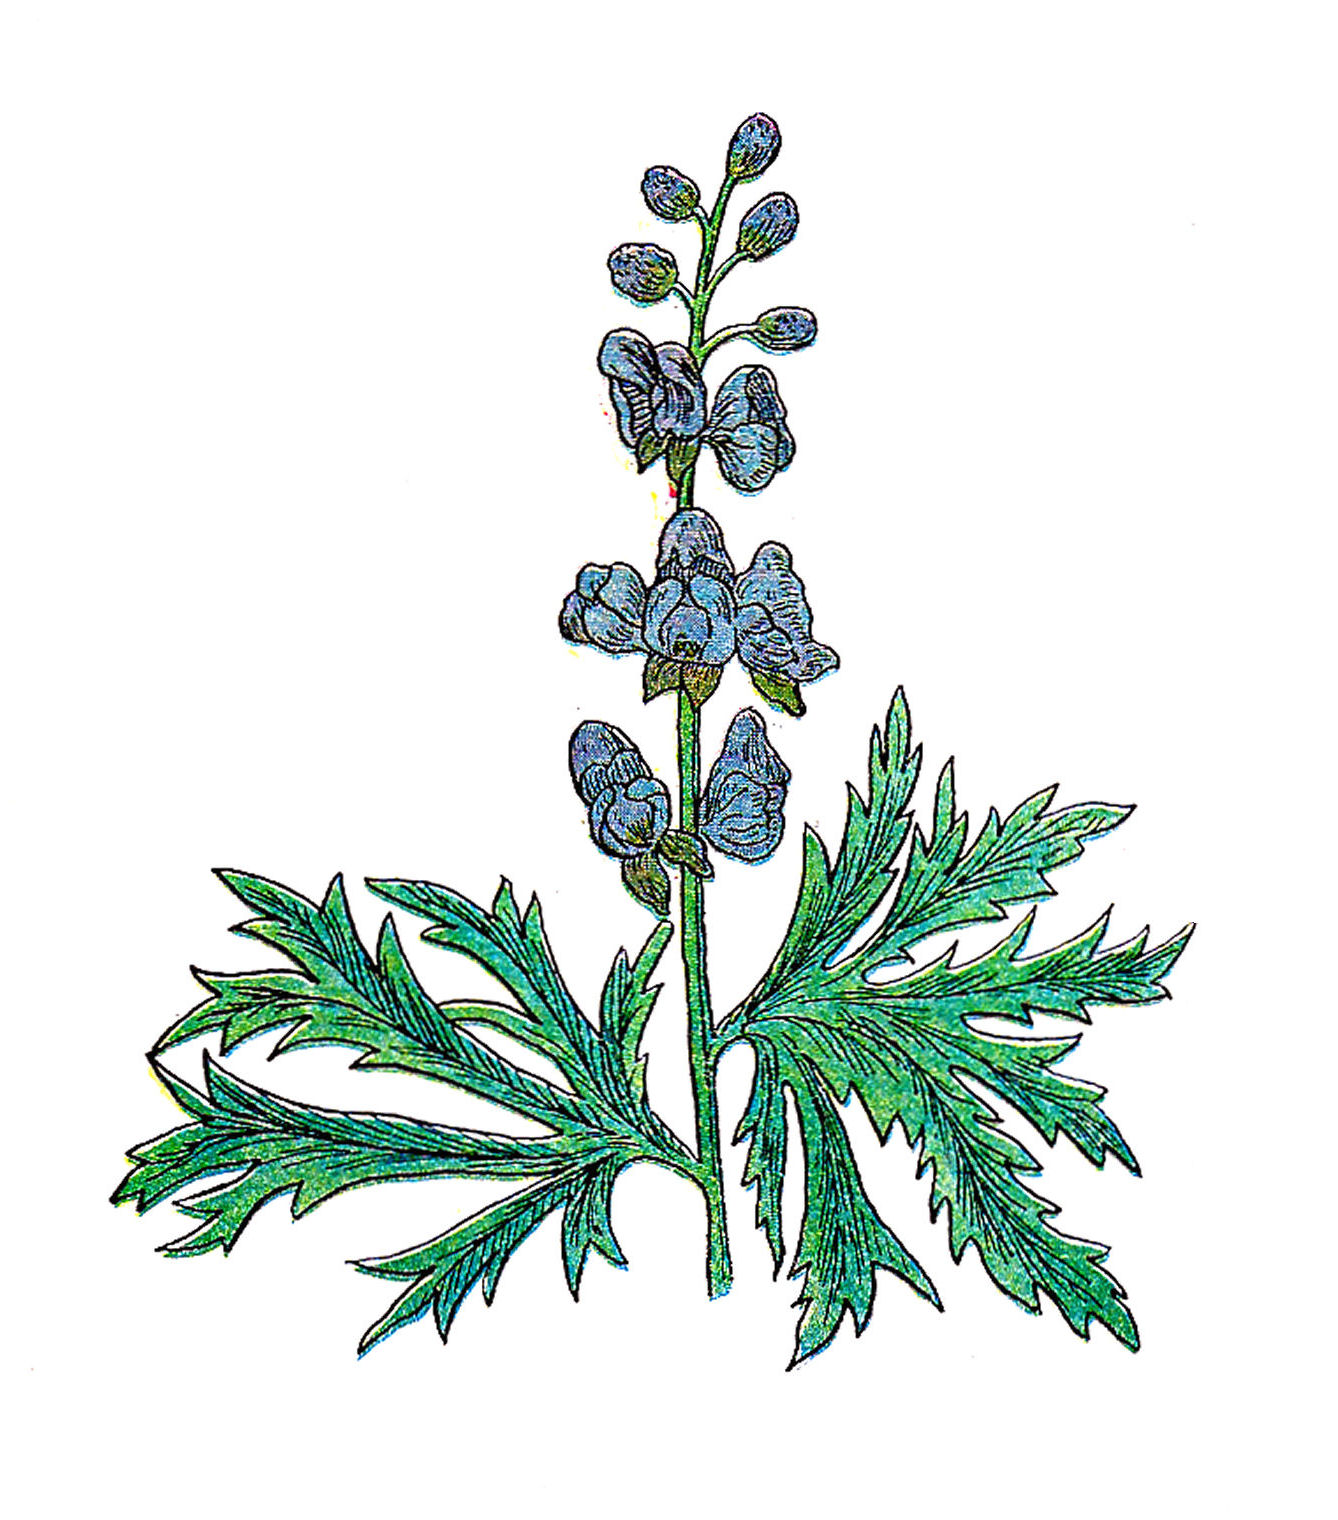 Free botanical clipart graphic download Free Botanical Clip Art: | Clipart Panda - Free Clipart Images graphic download